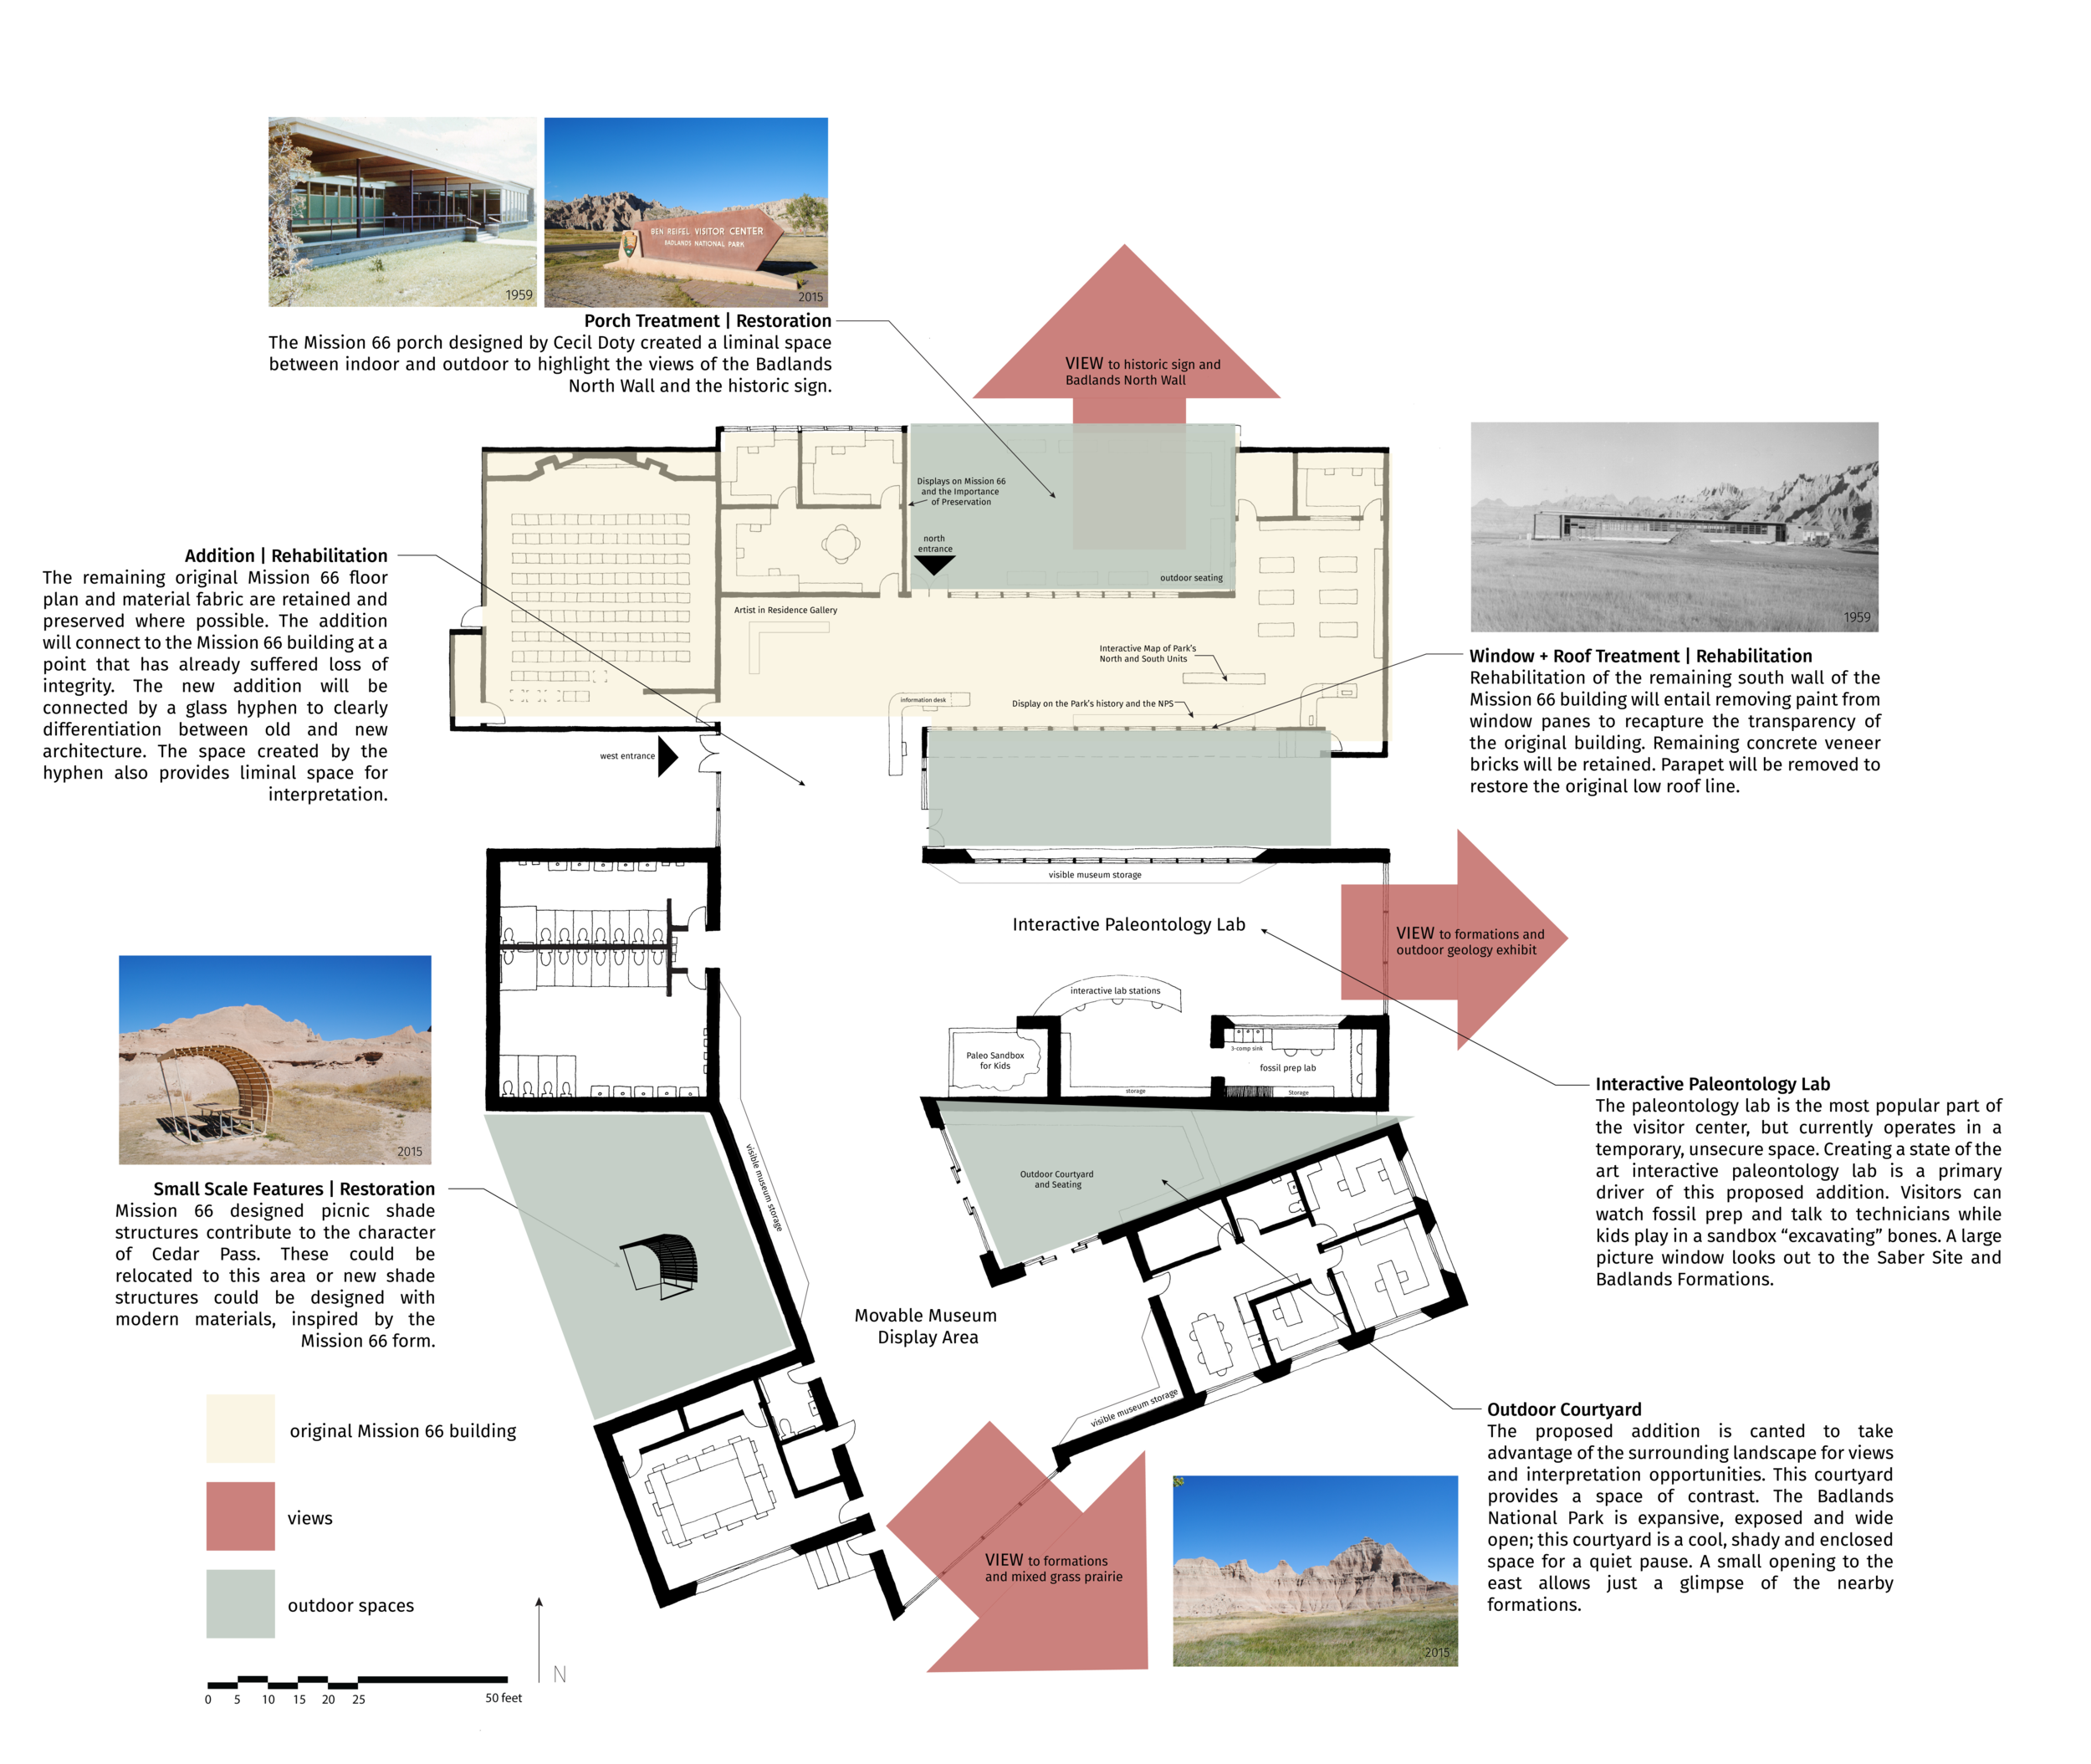 Scheme of proposed rehabilitation and addition to the Ben Reifel Visitor Center. Plan emphasis the retention of original material features, reconnecting to the landscape, and a new Paleontology Lab for visitors.